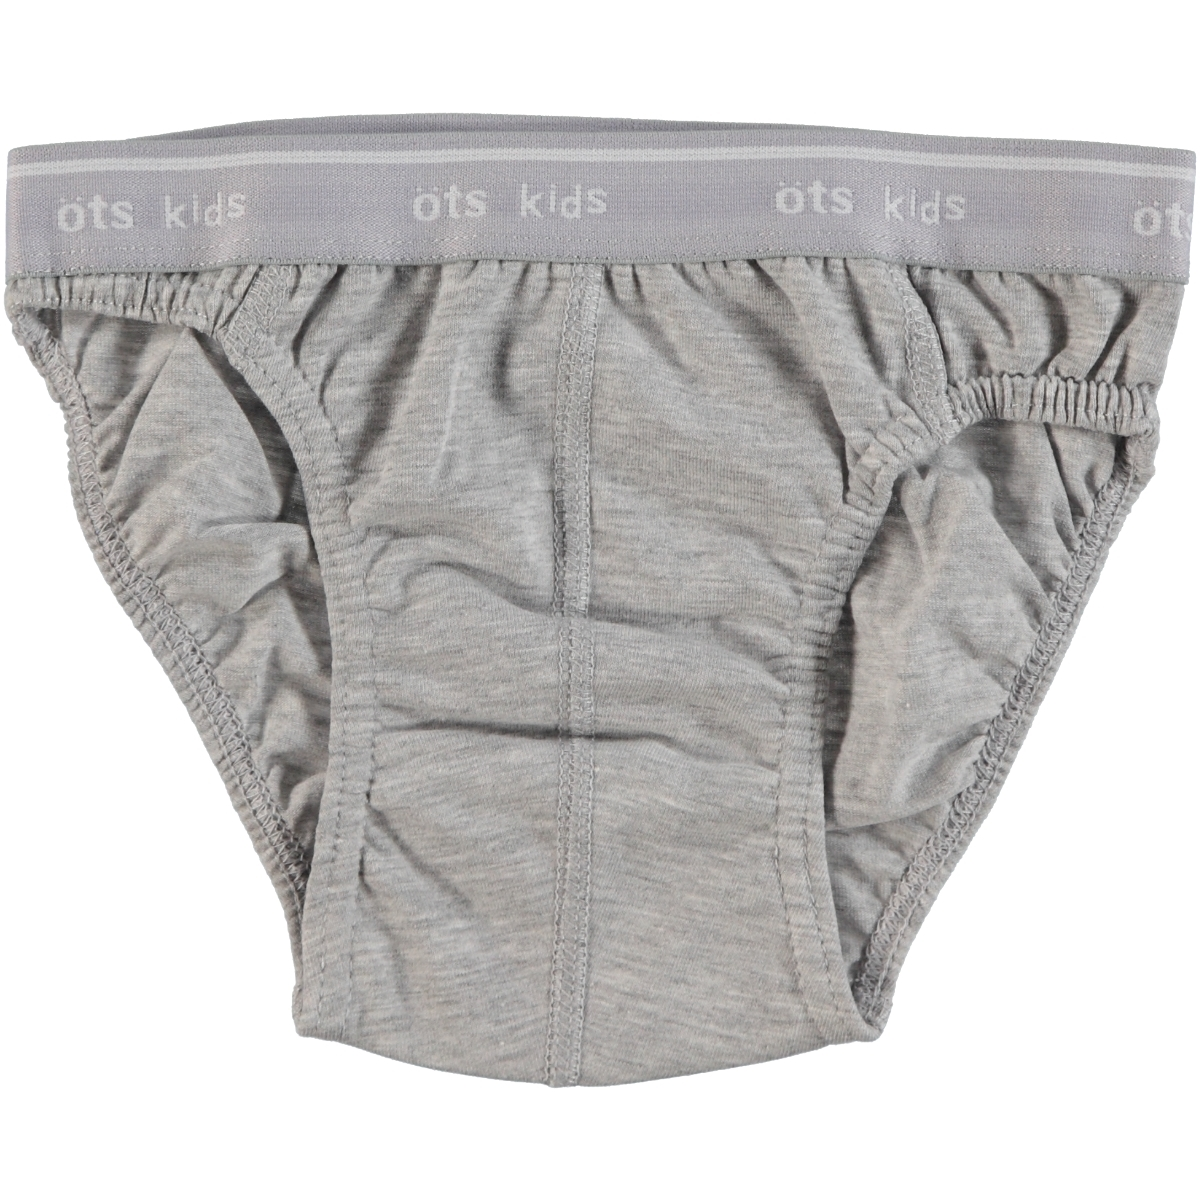 Öts Gray Panties Boy Age 6-12